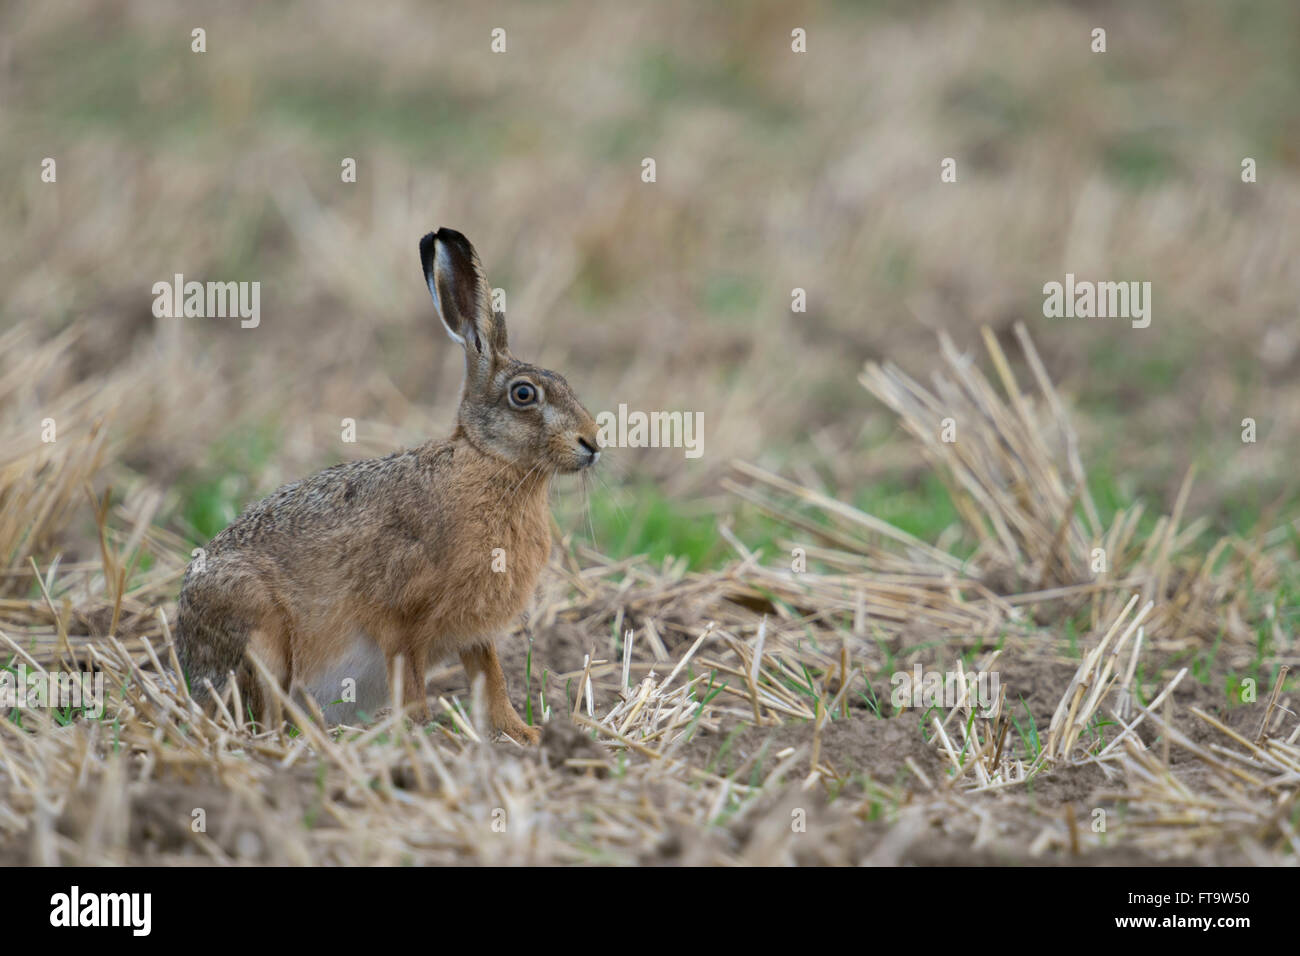 Brown Hare / European Hare / Feldhase ( Lepus europaeus ), attentive adult, sitting on a  stubble field. - Stock Image